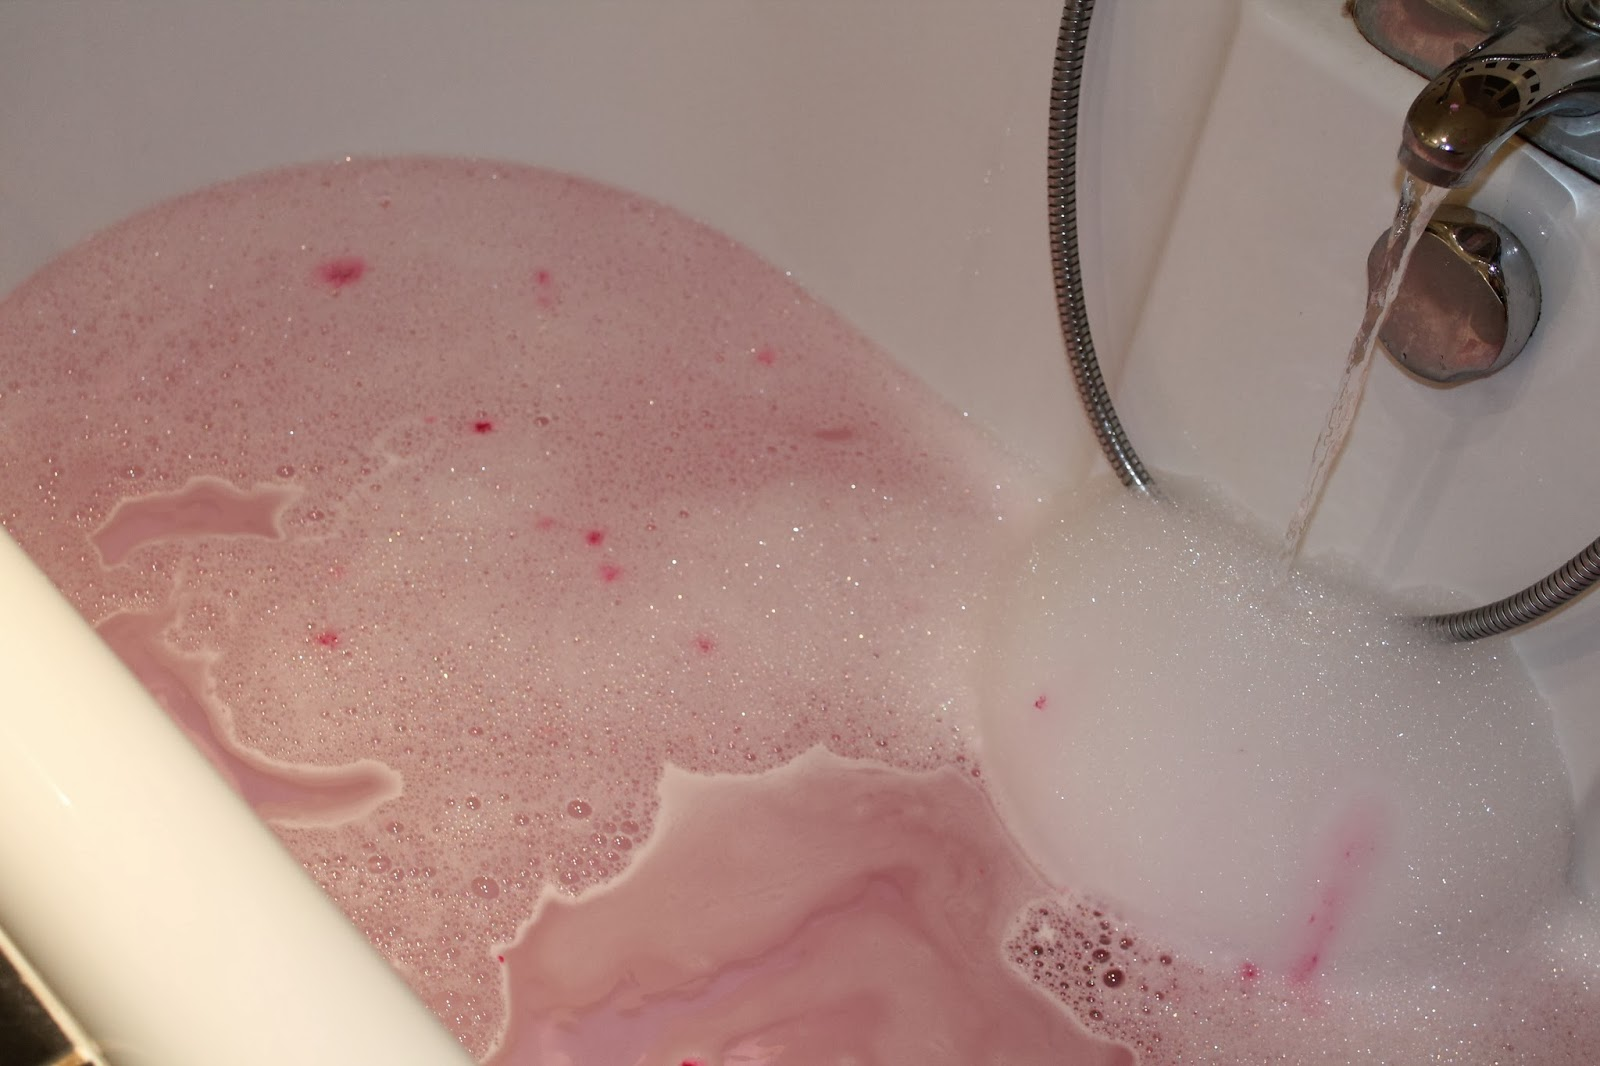 Lush - The Comforter Bubble Bar Review